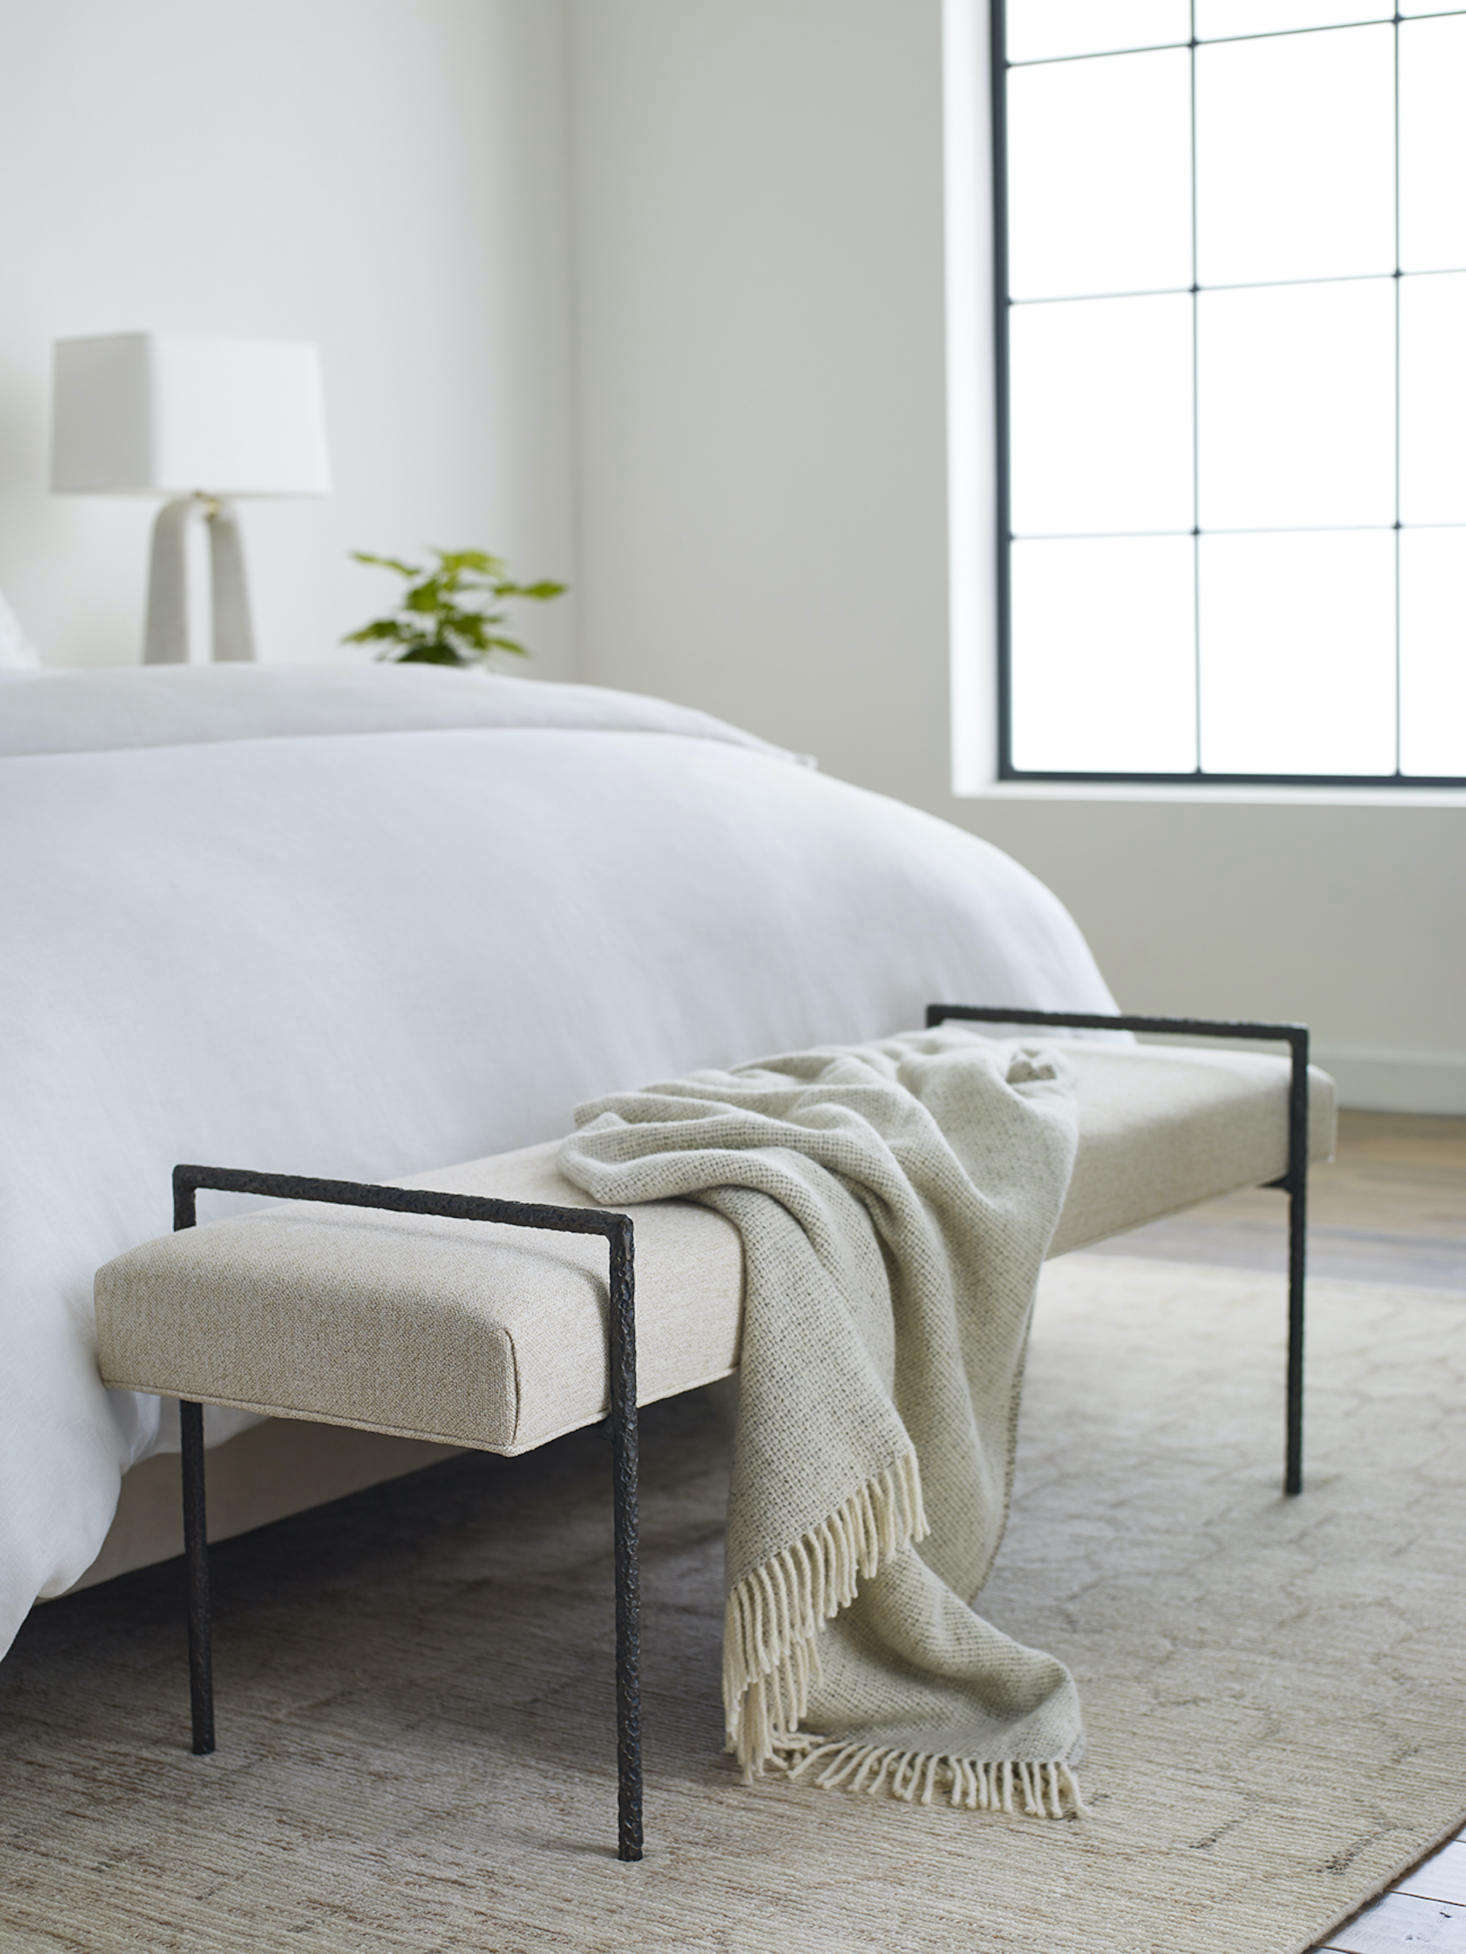 And the Yves Bench is a tribute to the centuries-old craft of blacksmithing, with a hand-forged, one-of-a-kind wrought-iron frame handmade by metalsmiths in the Blue Ridge Mountains. Its uses are many, from a sitting spot at the end of a bed or in a living area to a place to put on shoes in an entryway.